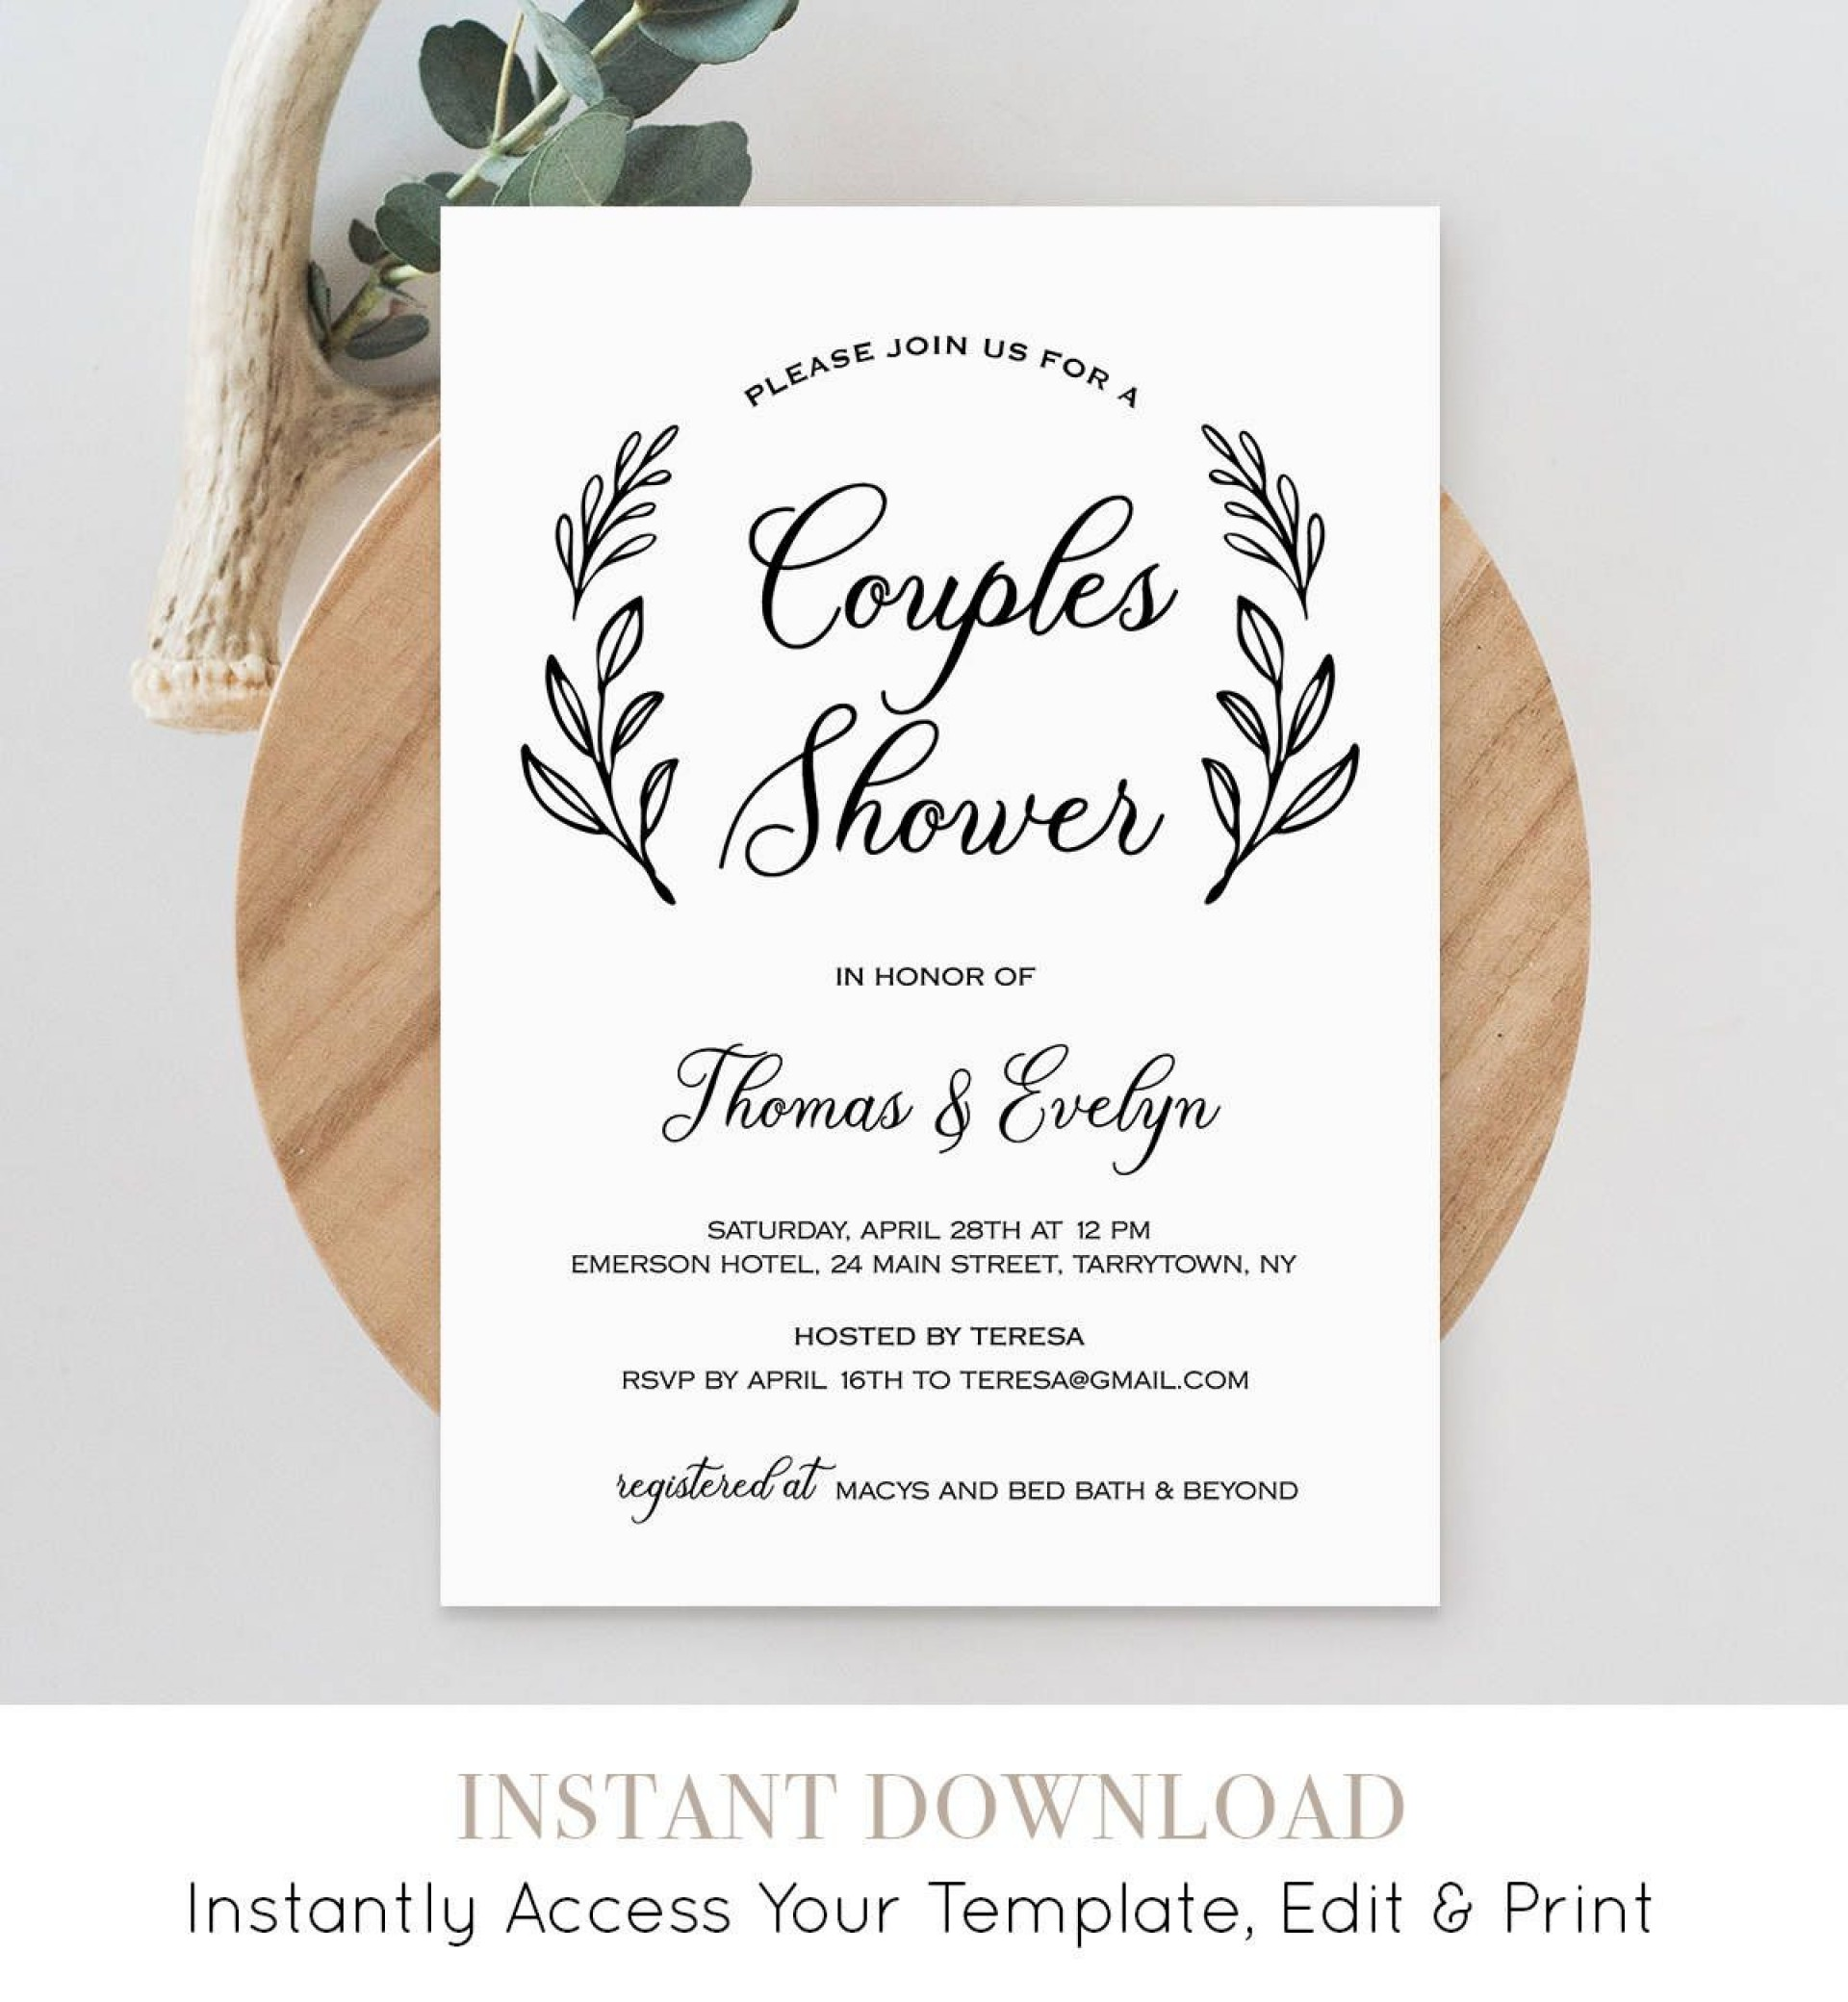 005 Amazing Free Couple Shower Invitation Template Download Picture 1920